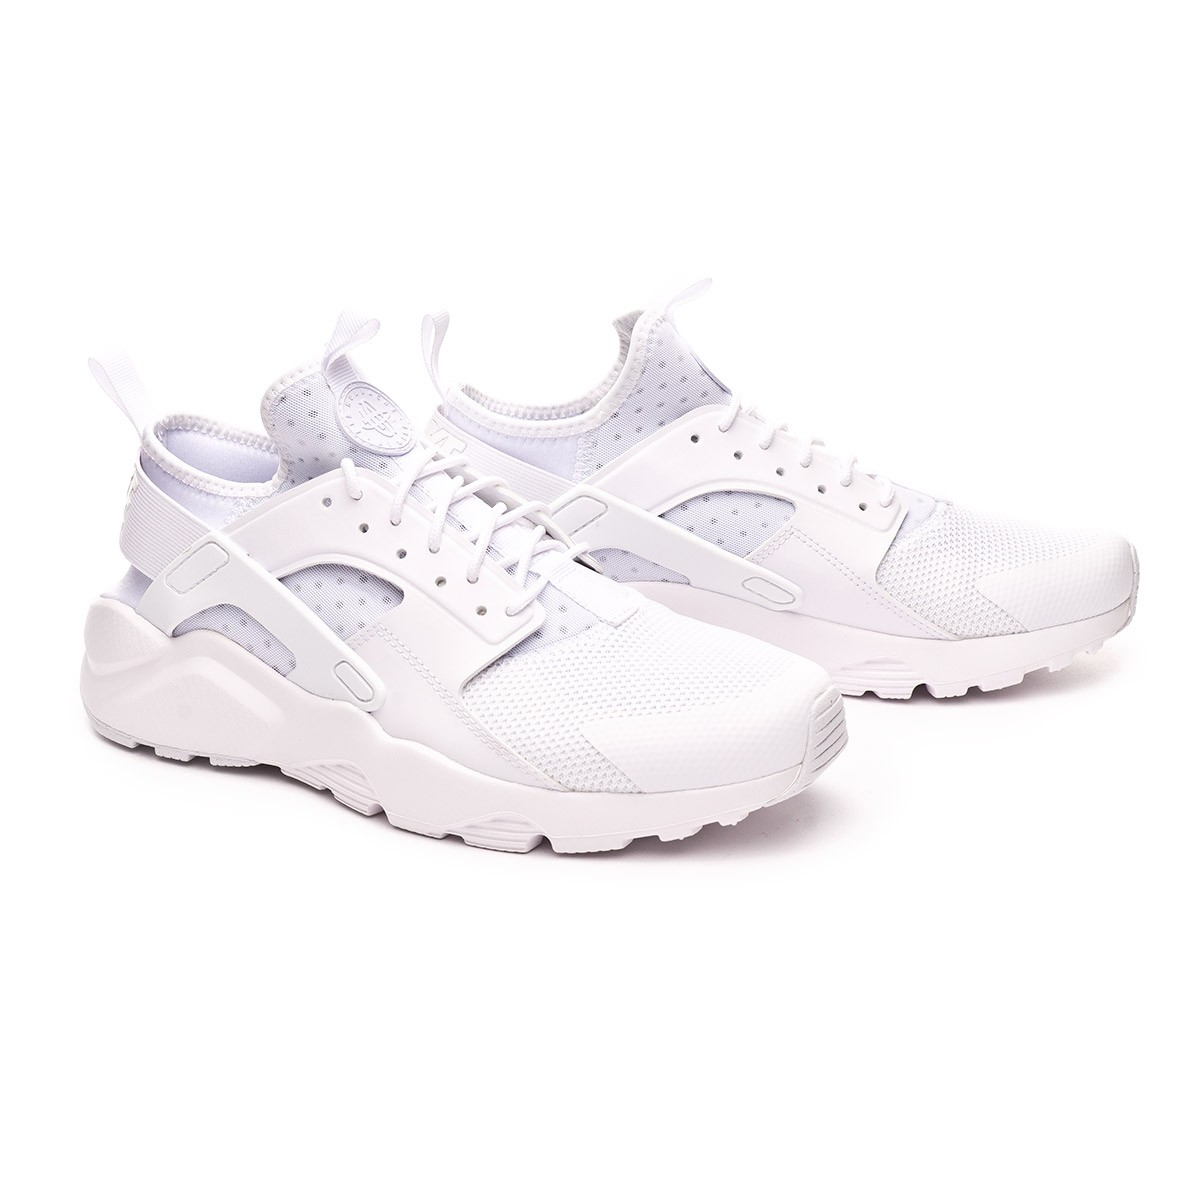 separation shoes 4559c dfa1c Zapatilla Air Huarache Run Ultra 2019 White